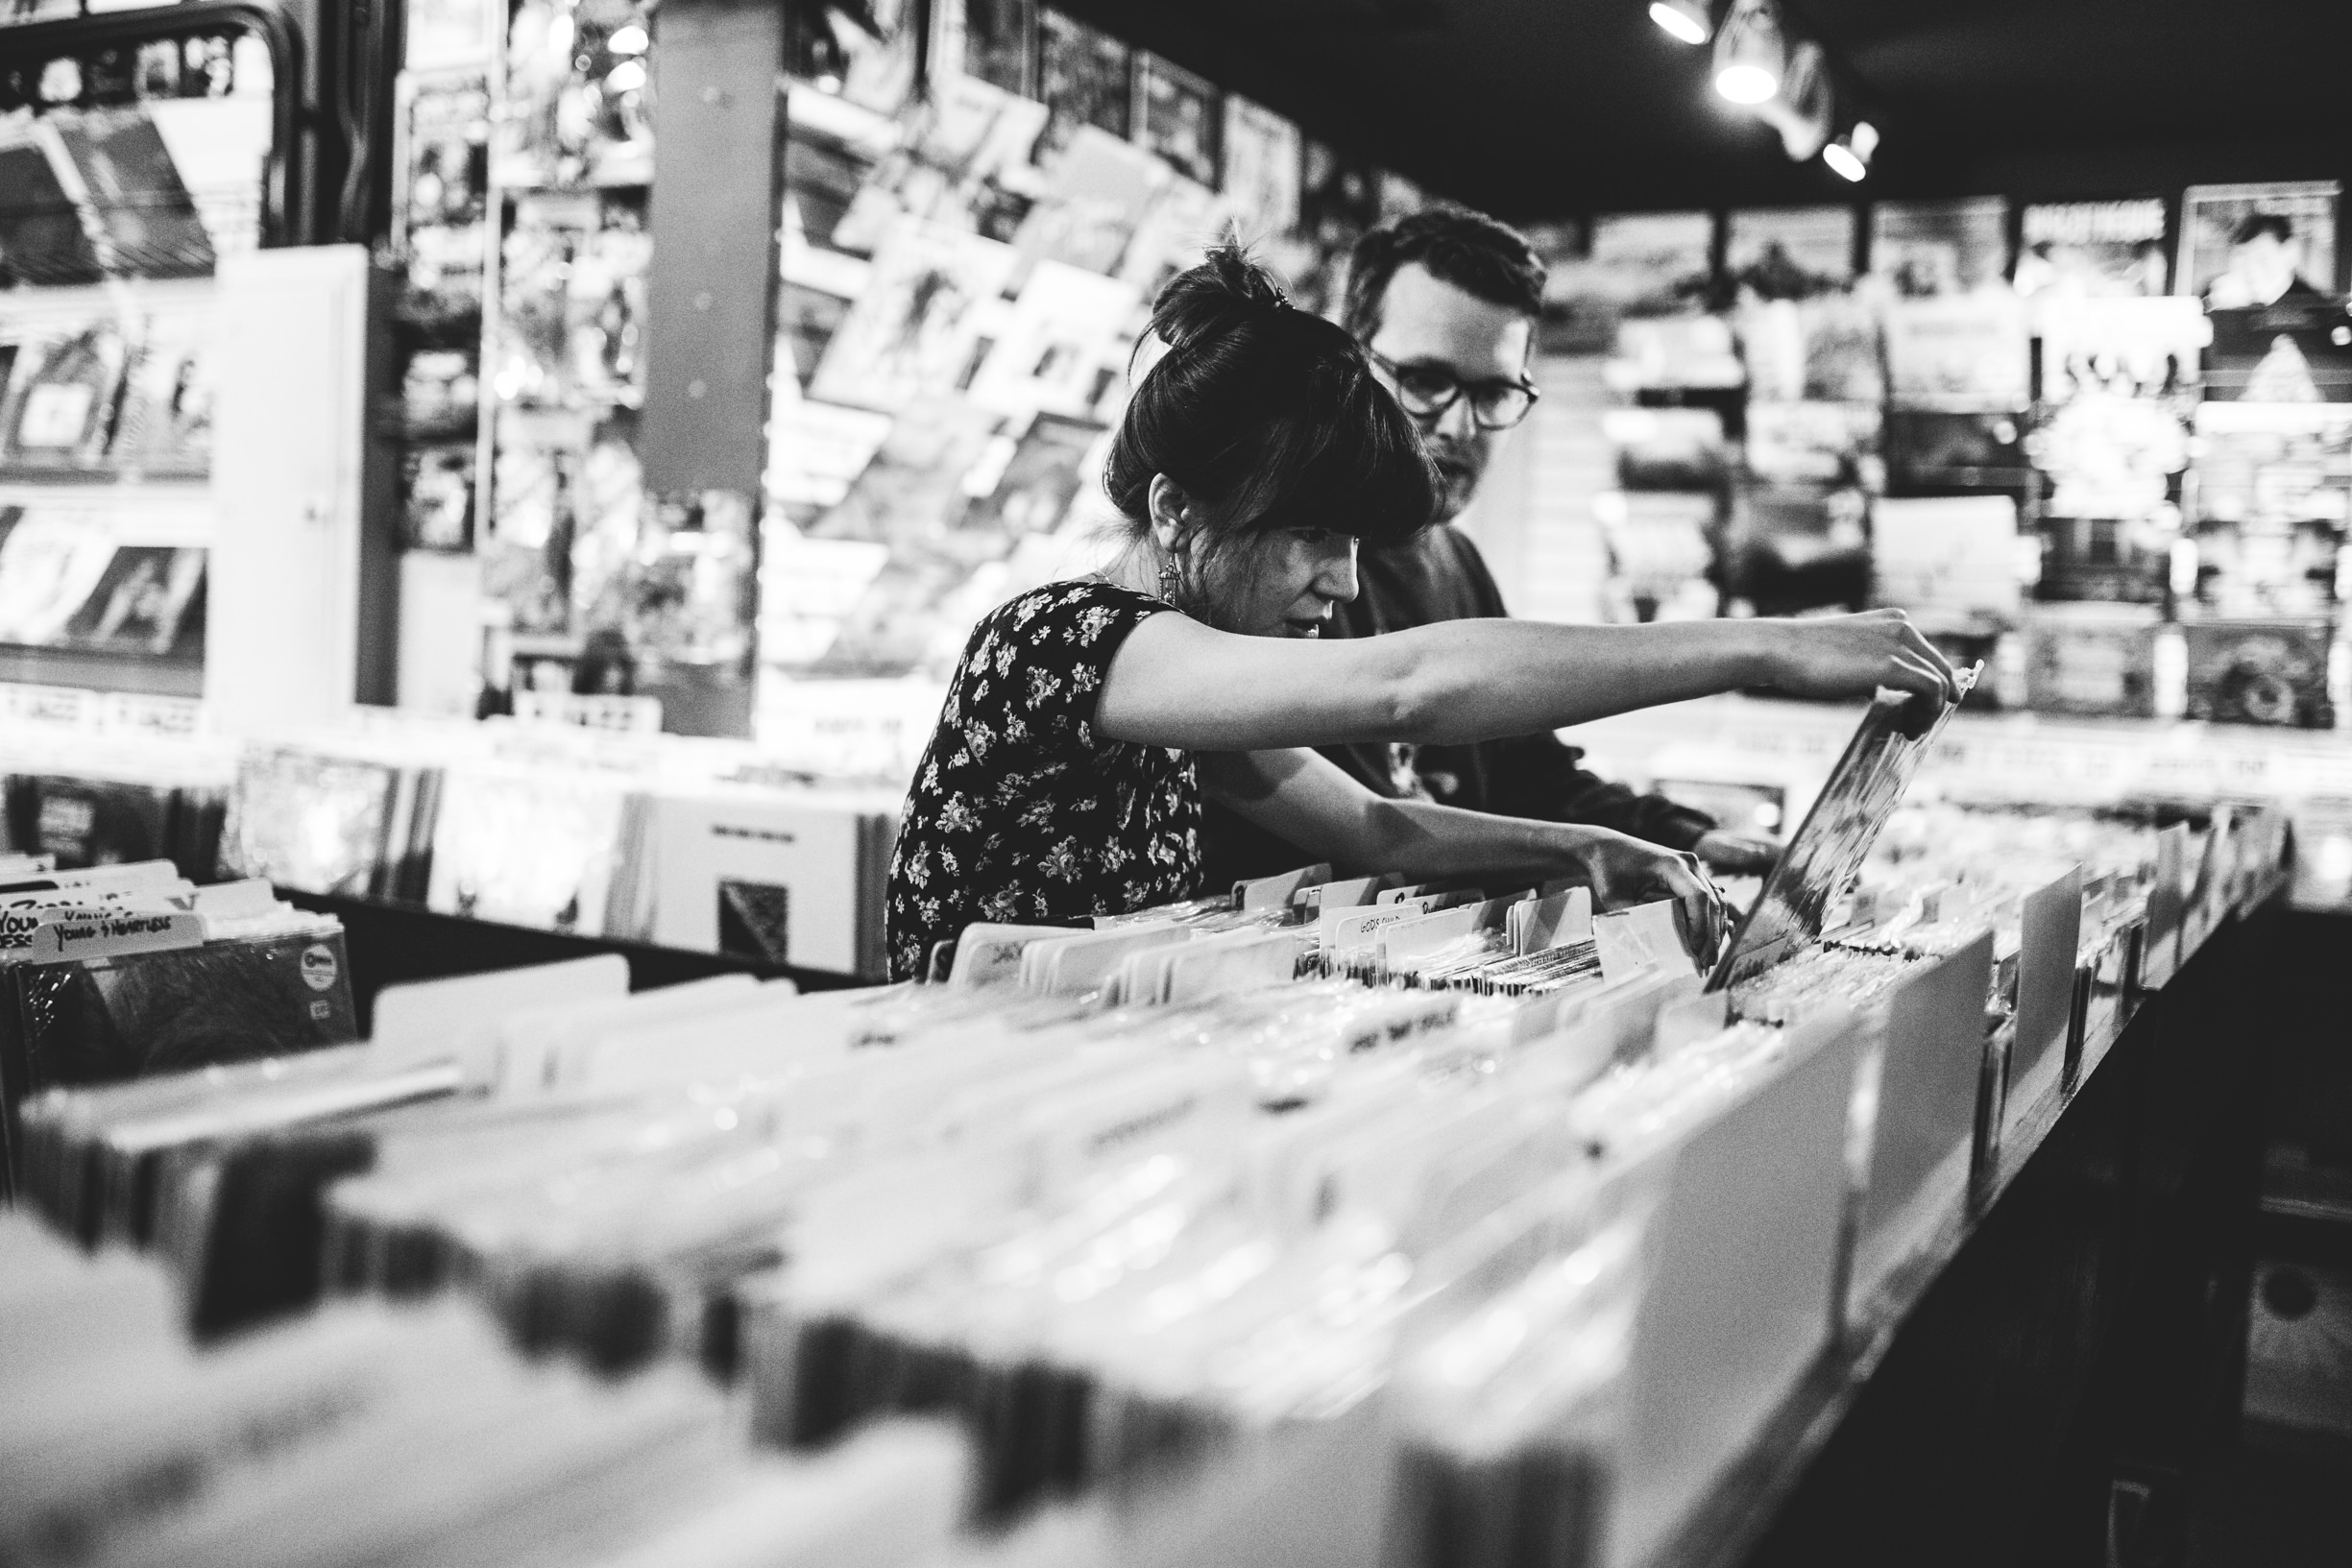 louisville-engagement-photographer-record-store-in-home-session-crystal-ludwick-photo (45 of 53).jpg